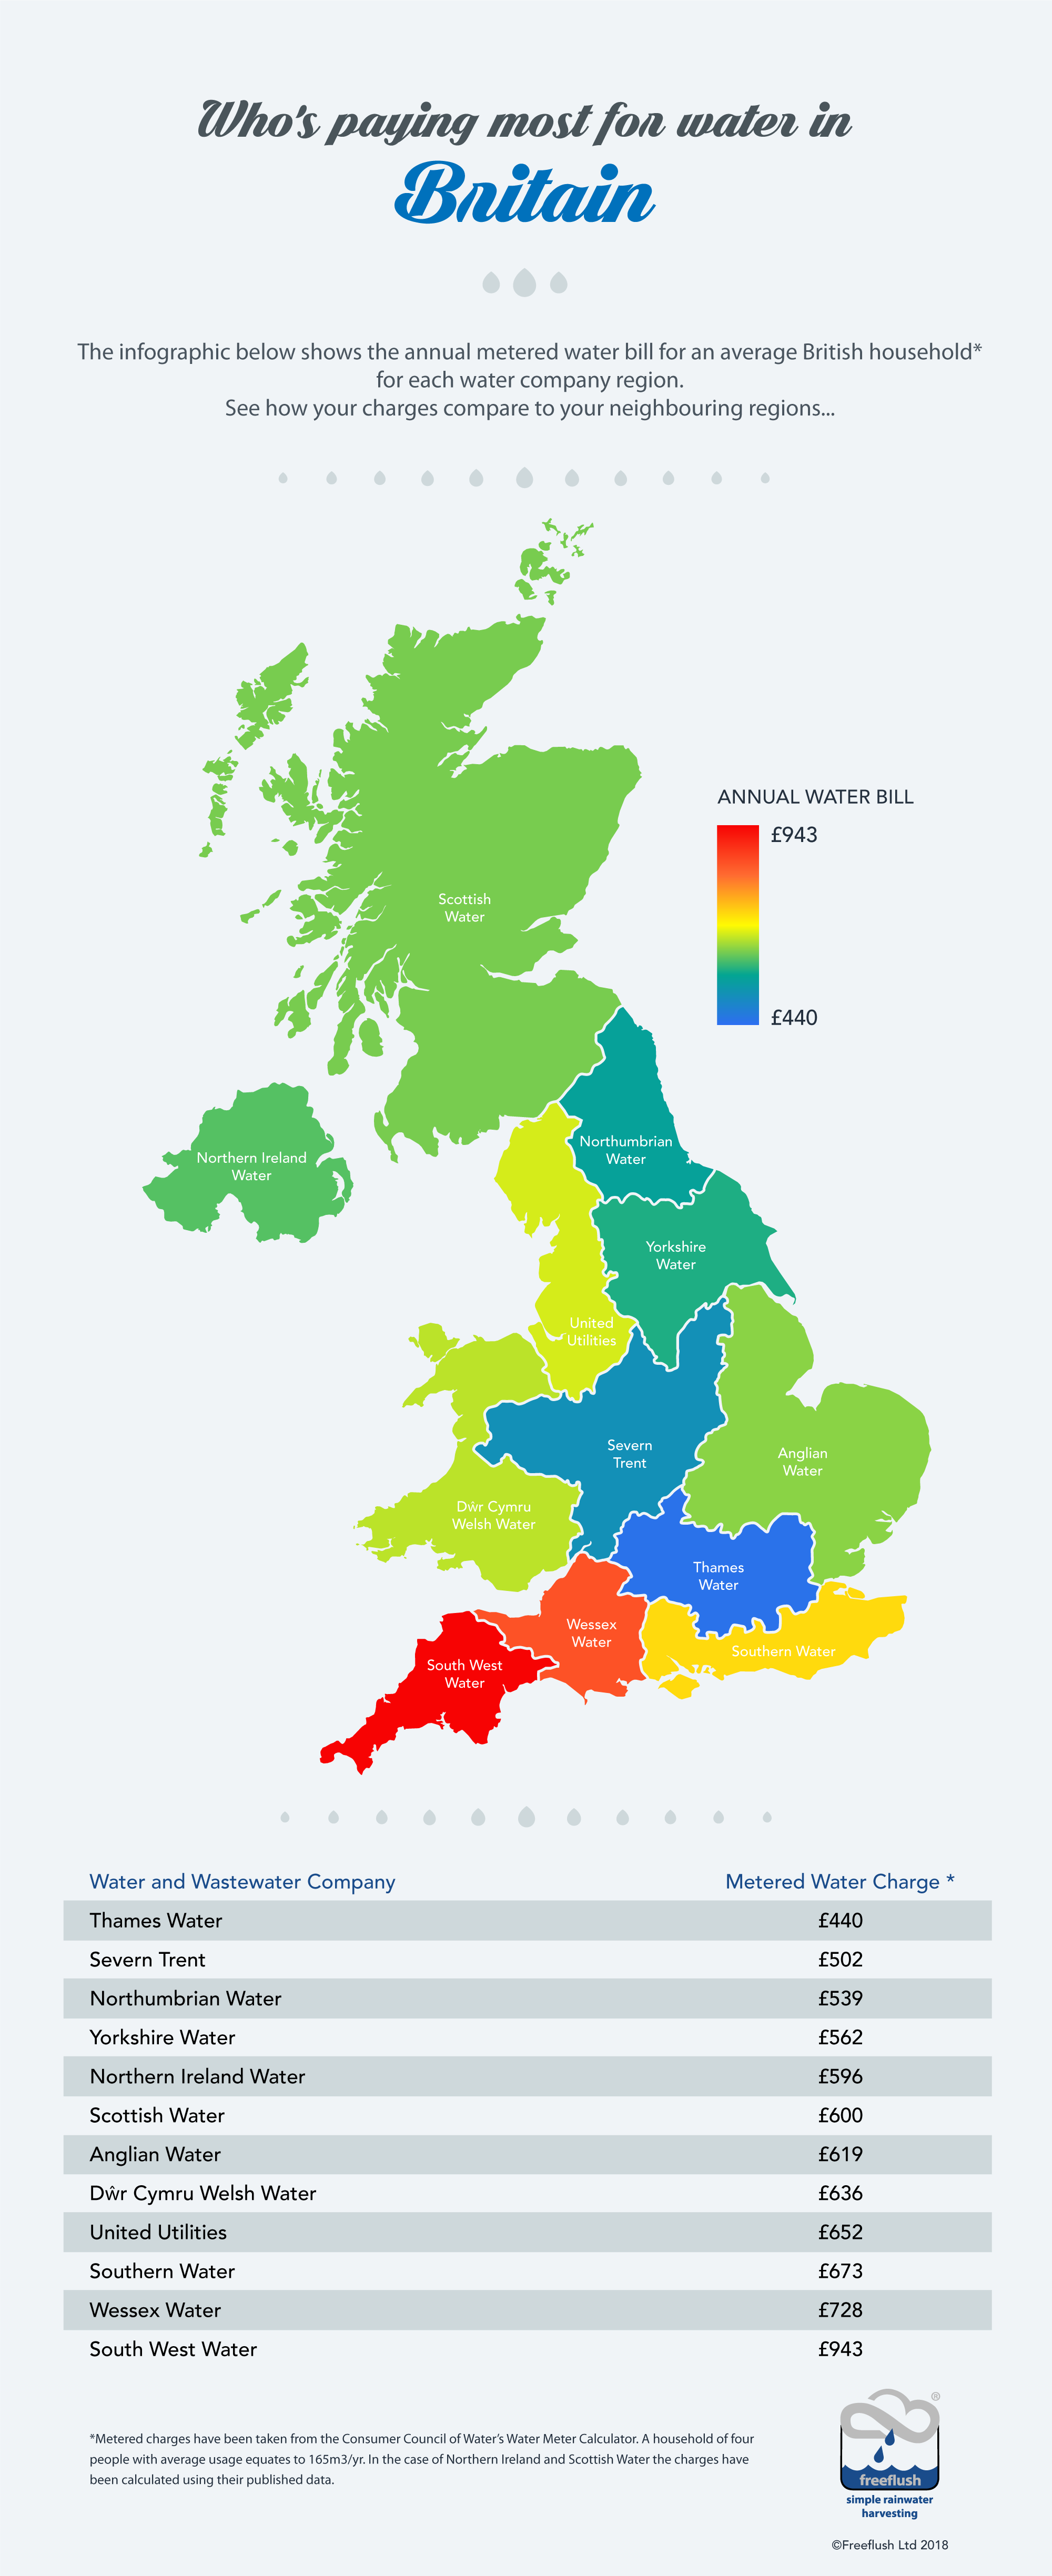 Who's paying most for water bills in Britain